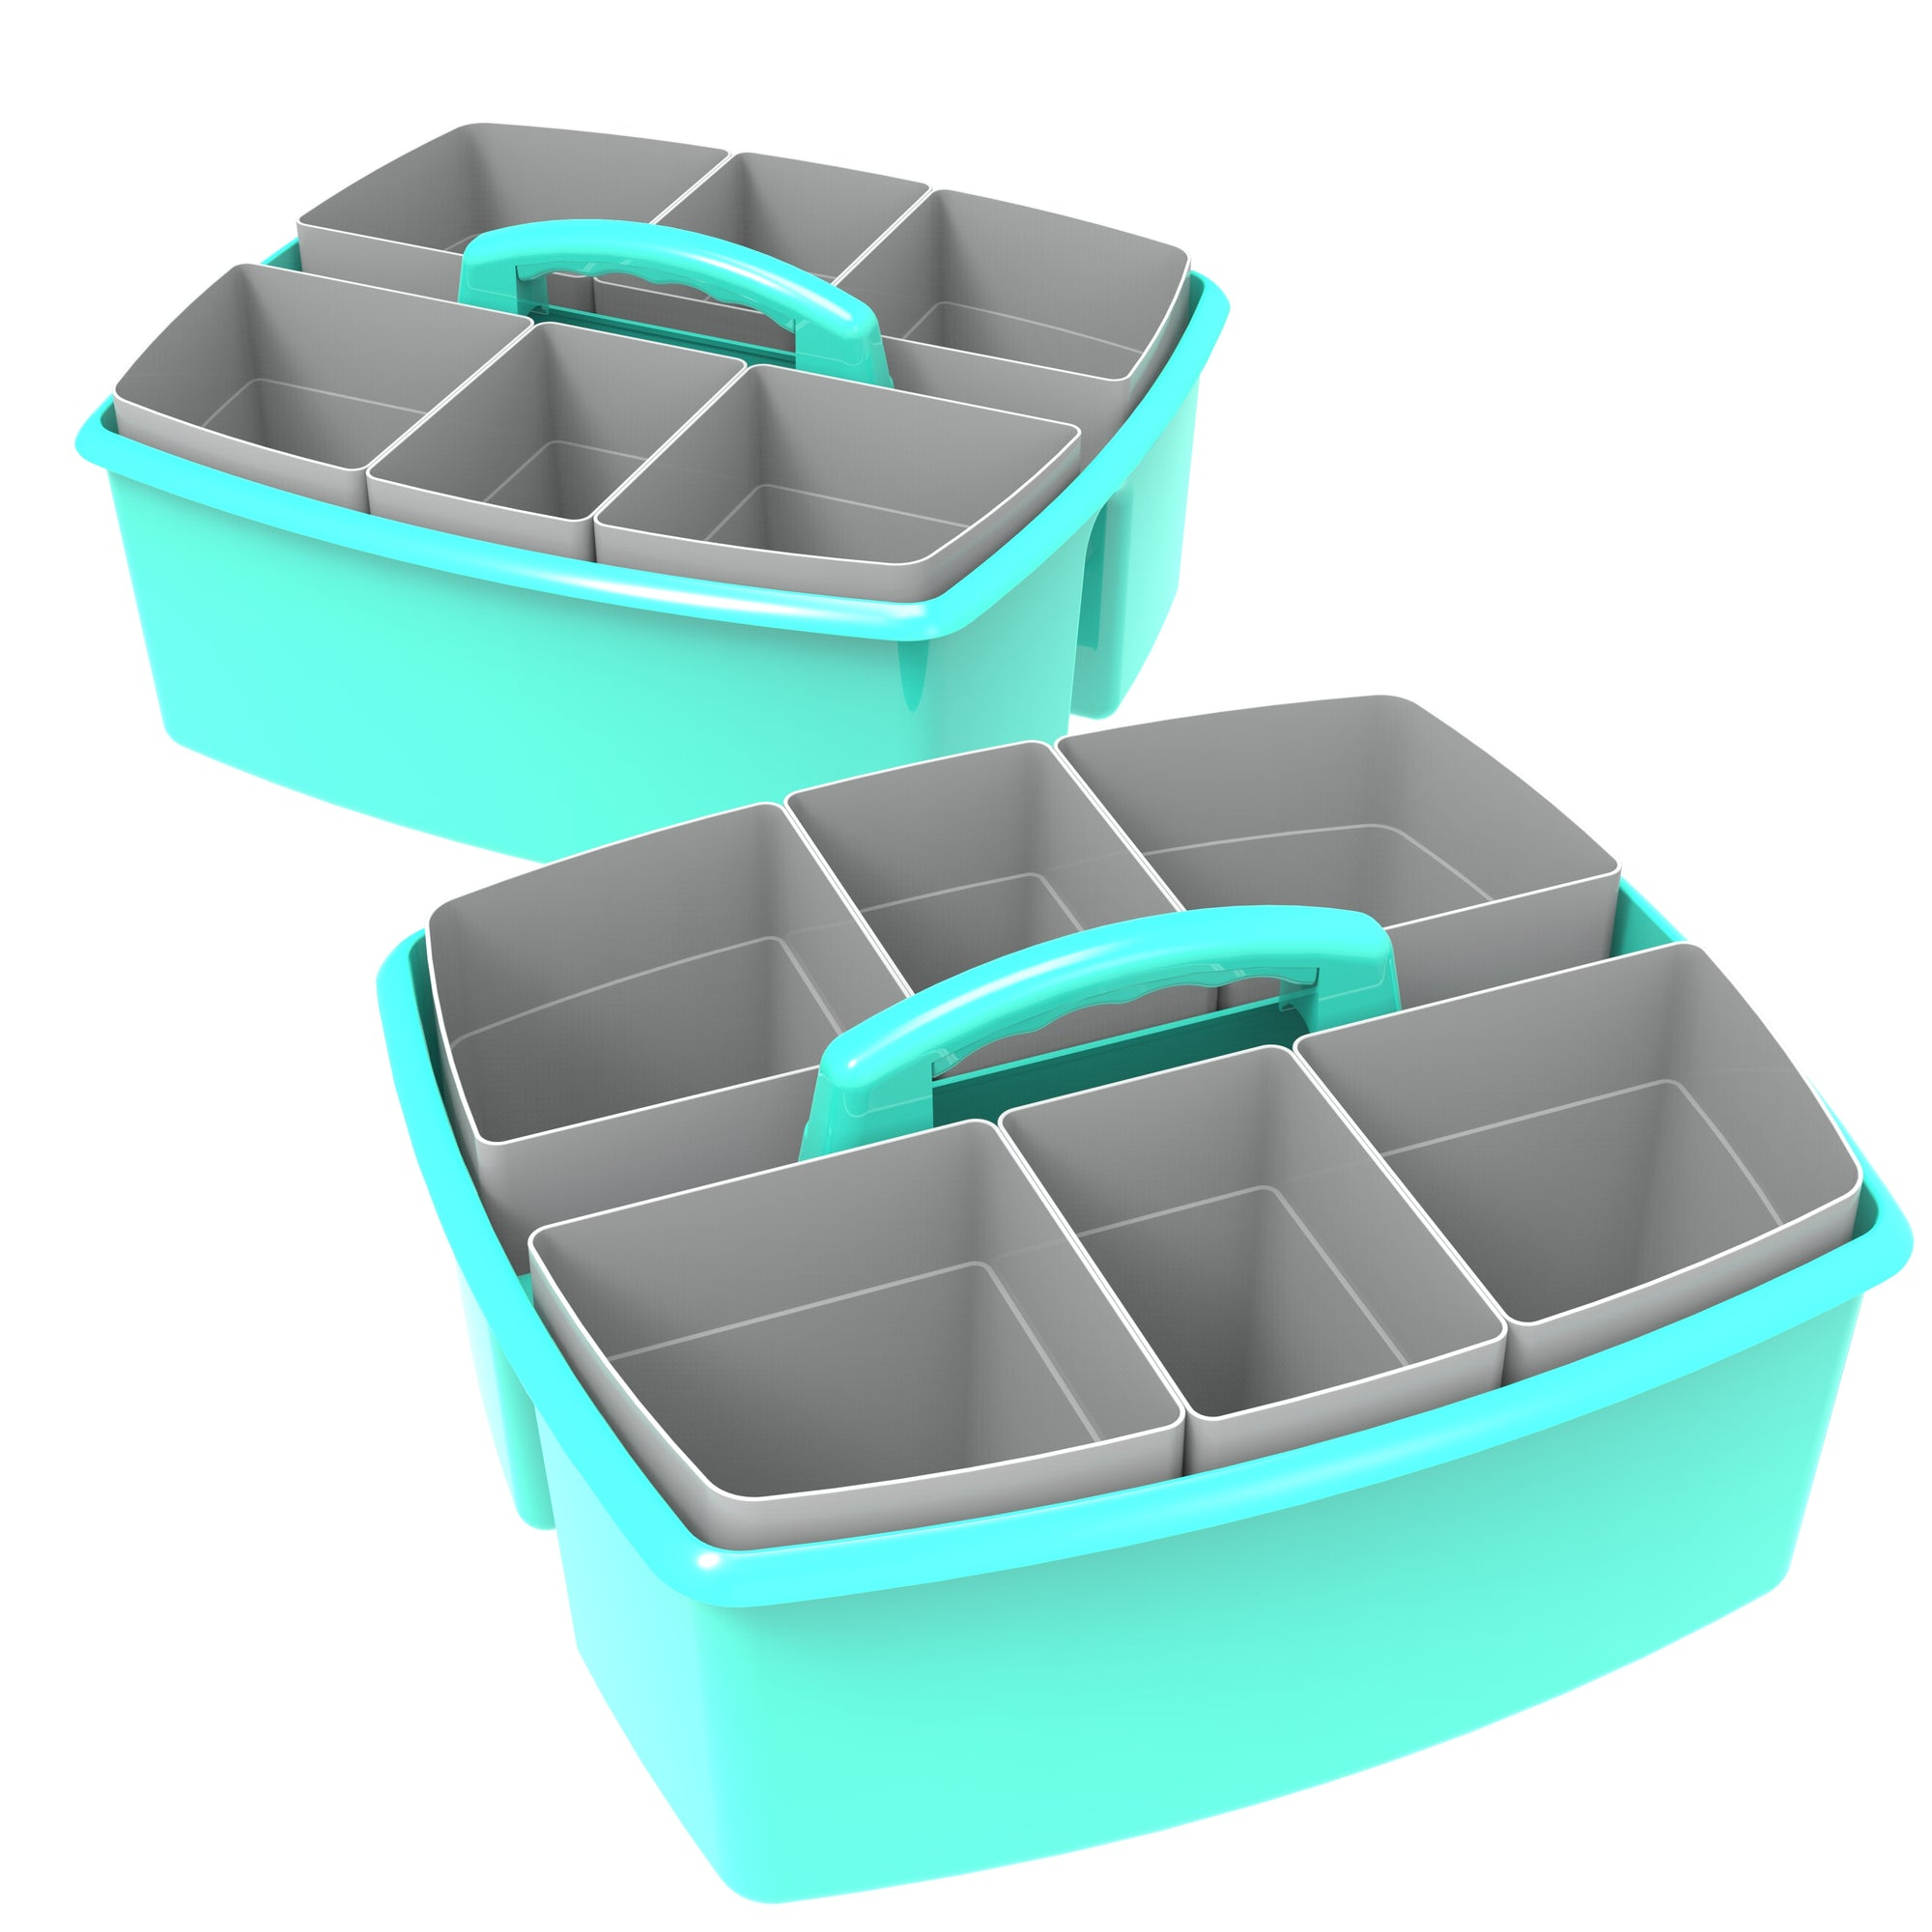 Storex Large Caddy with Sorting Cups, Teal, 2-Pack